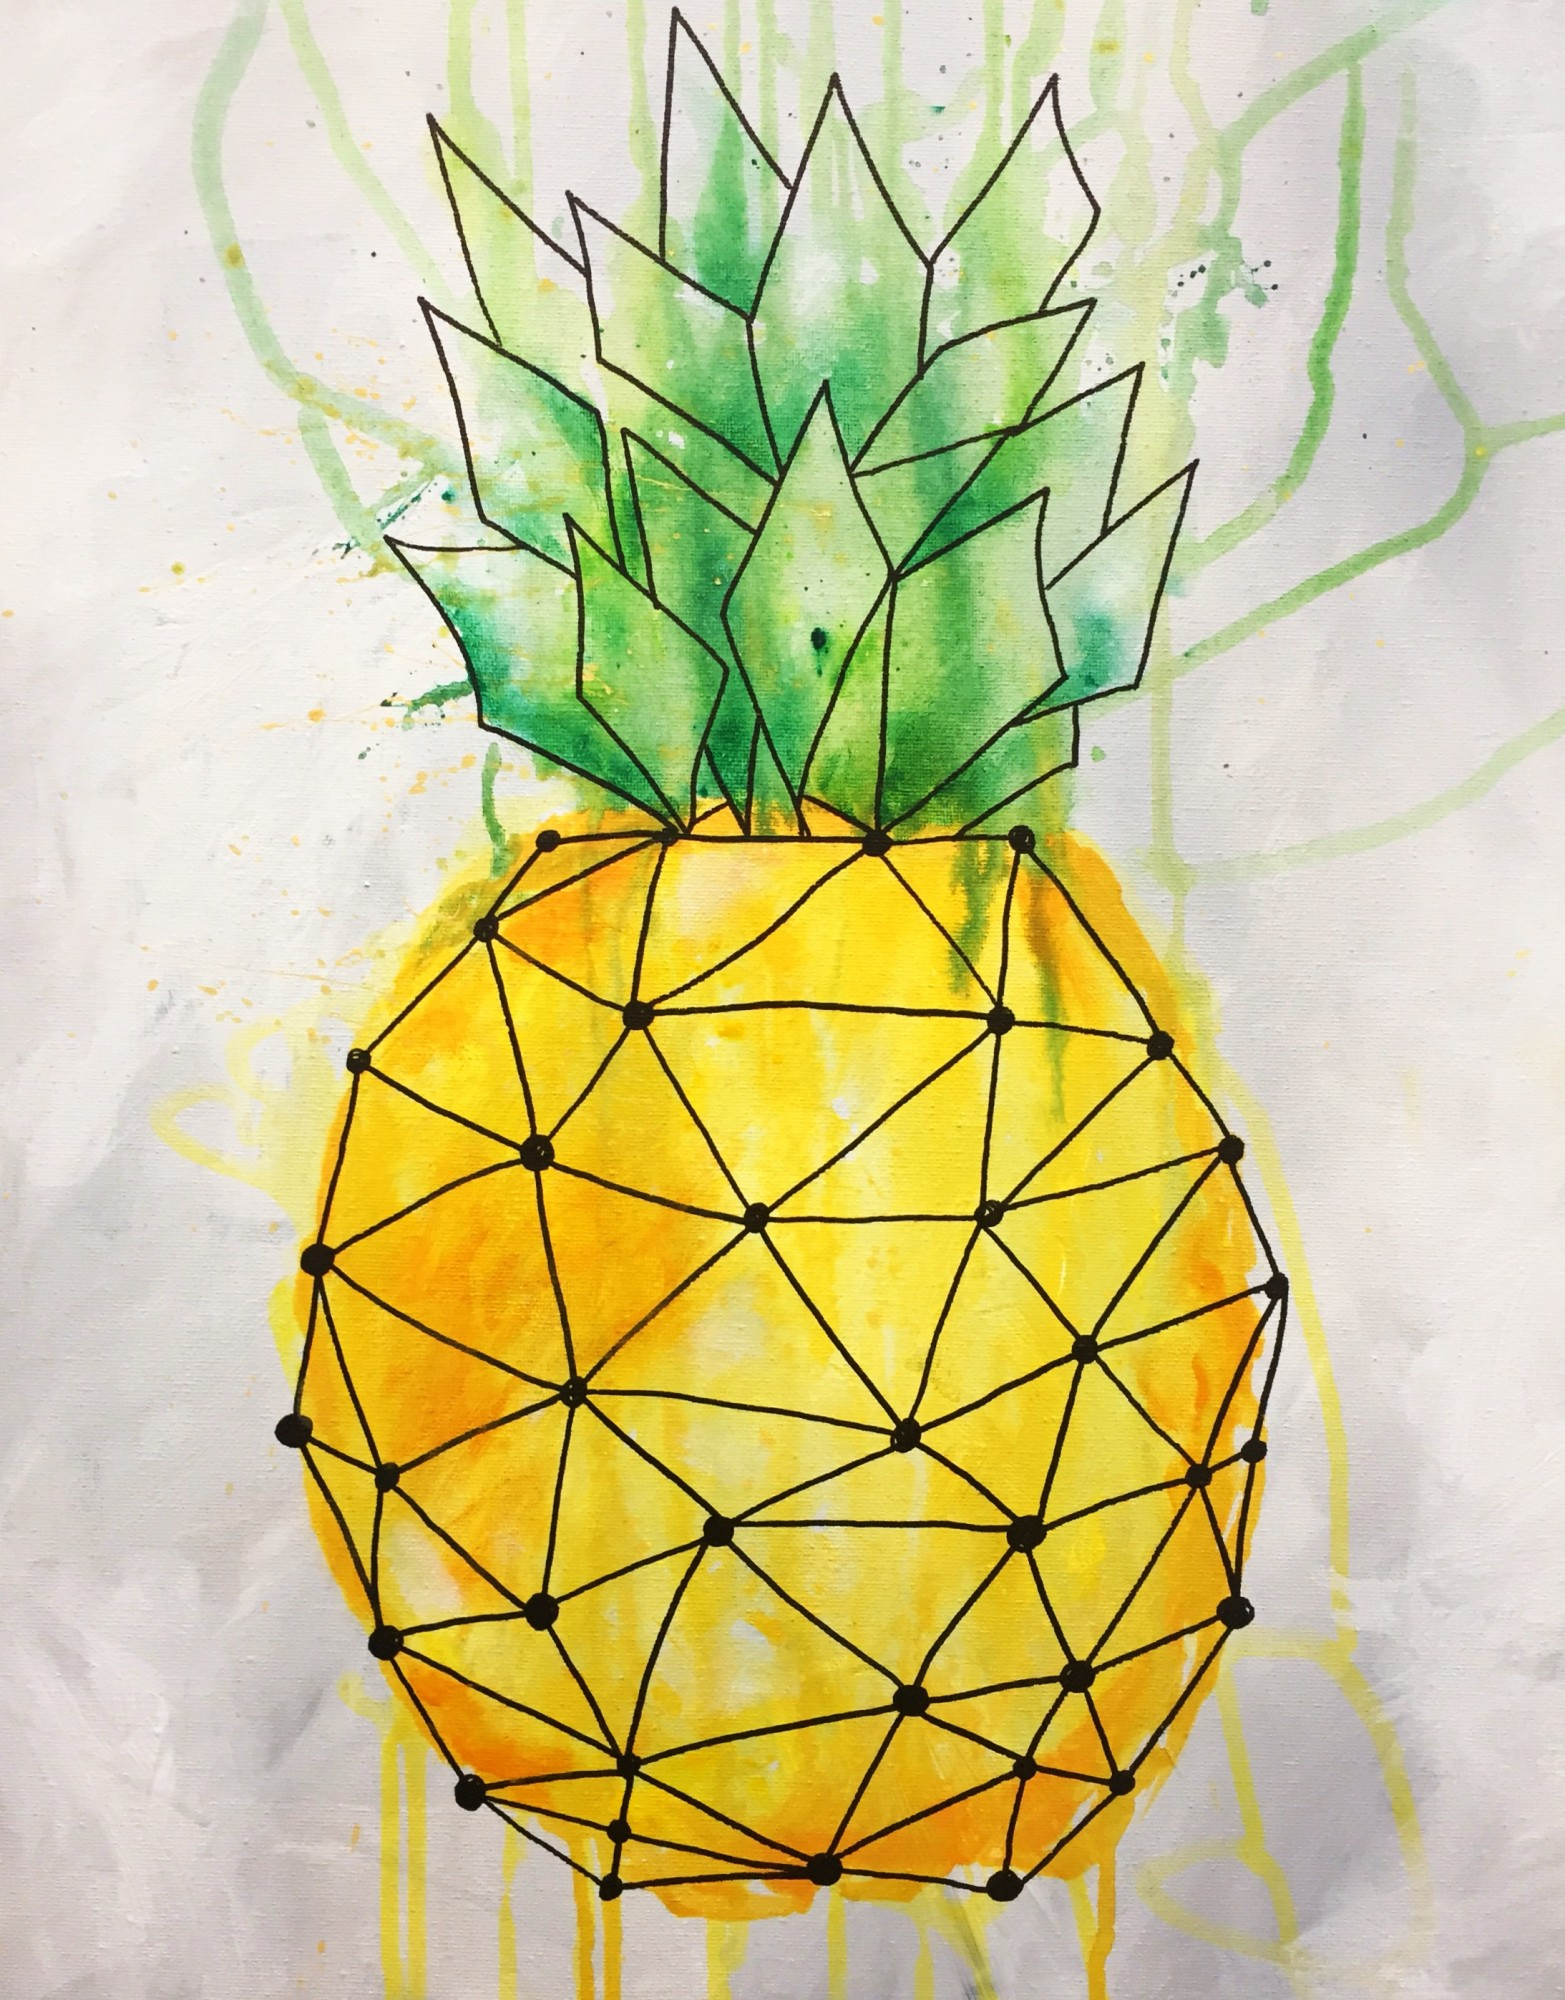 Pineapple $25 Winedown Wednesday - Downtown GR